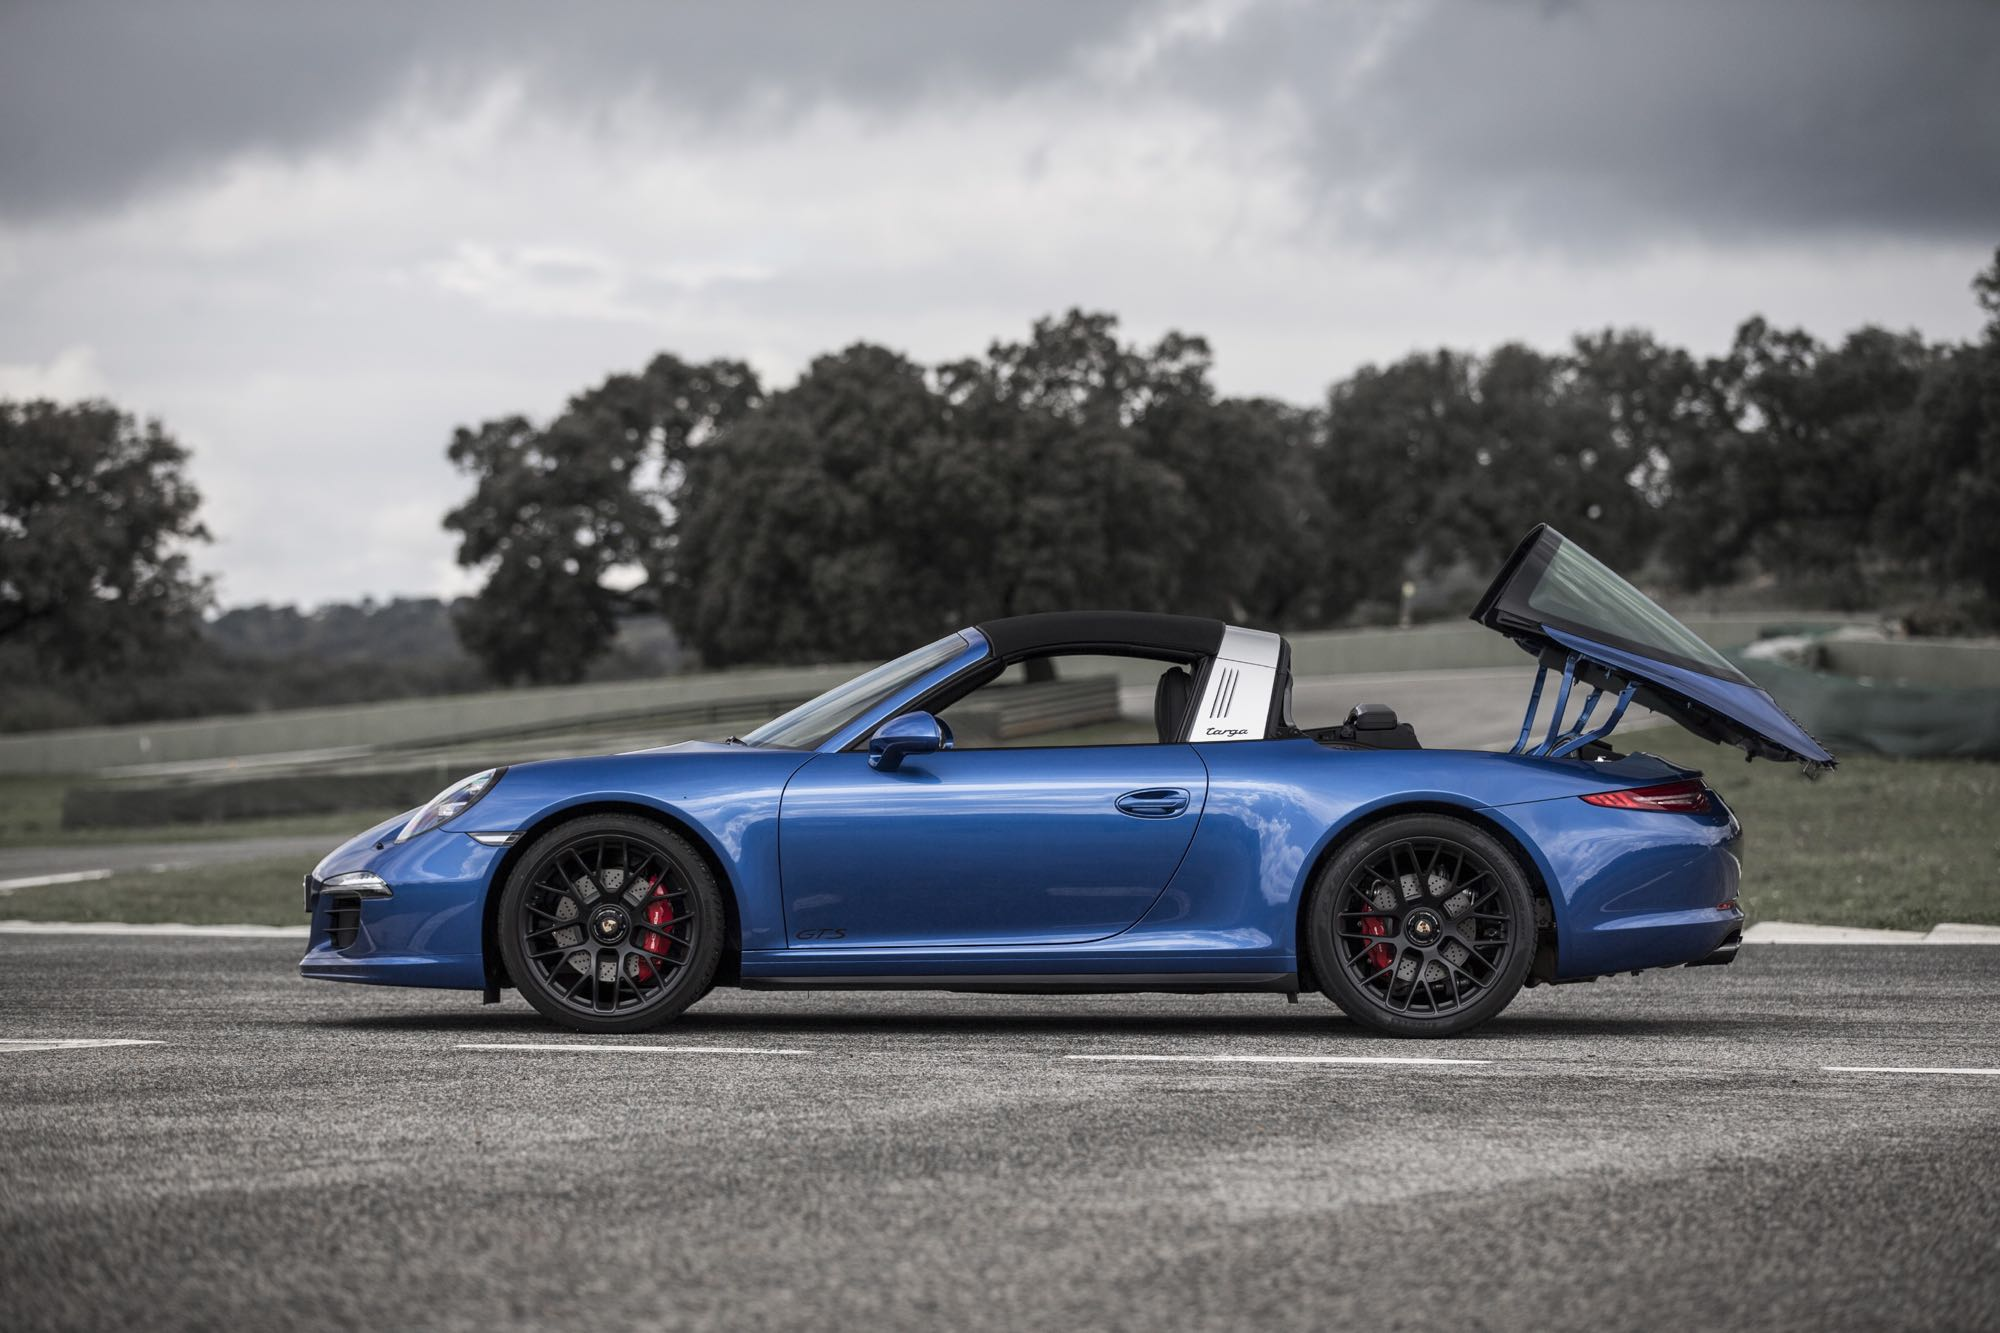 2015 porsche 911 targa 4 gts review photos caradvice. Black Bedroom Furniture Sets. Home Design Ideas